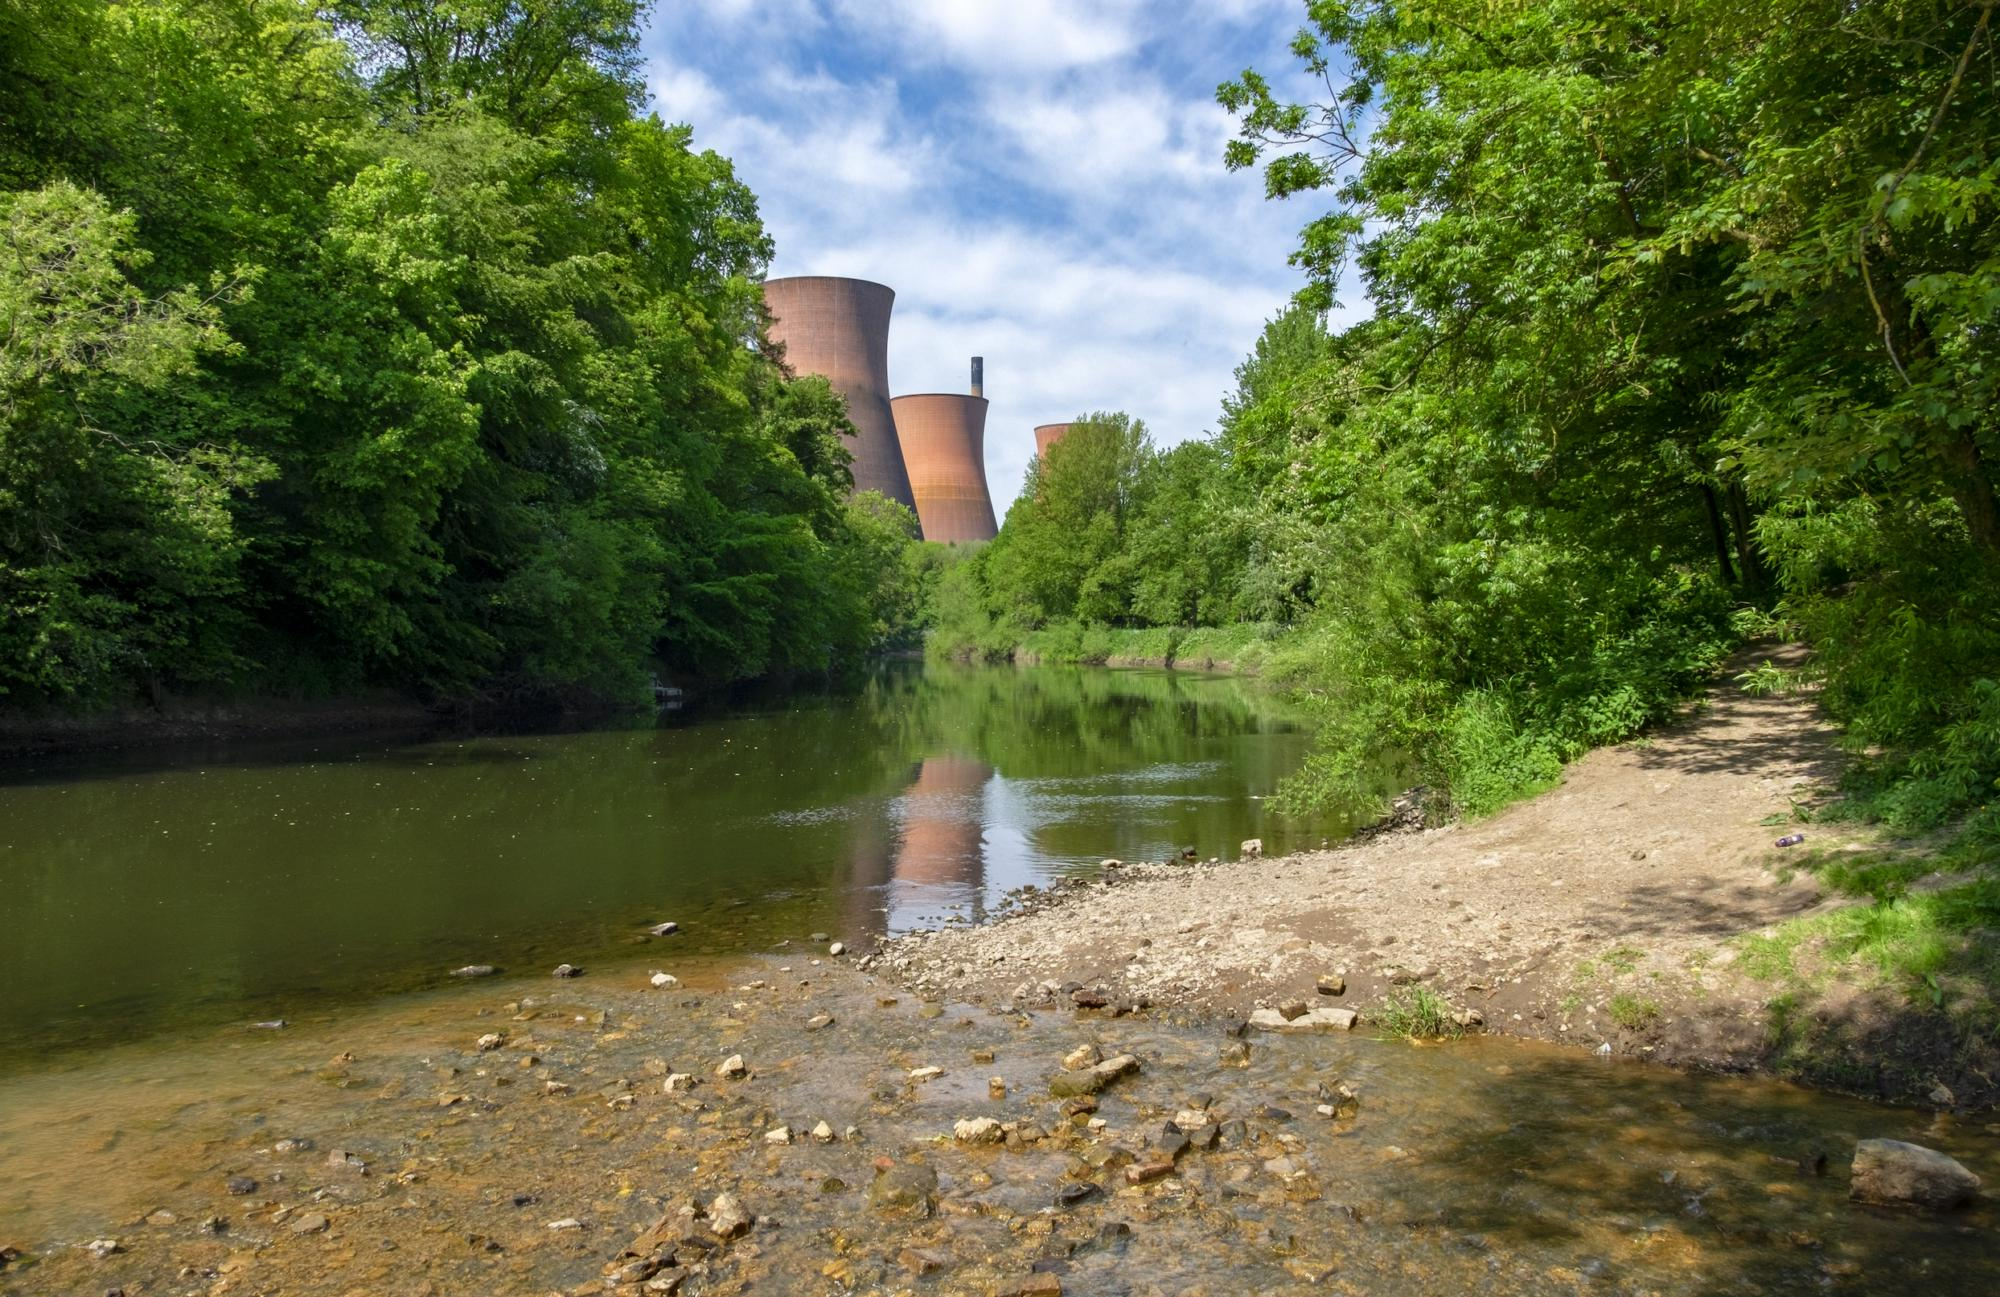 Telford Camping | Campsites in Telford, Shropshire